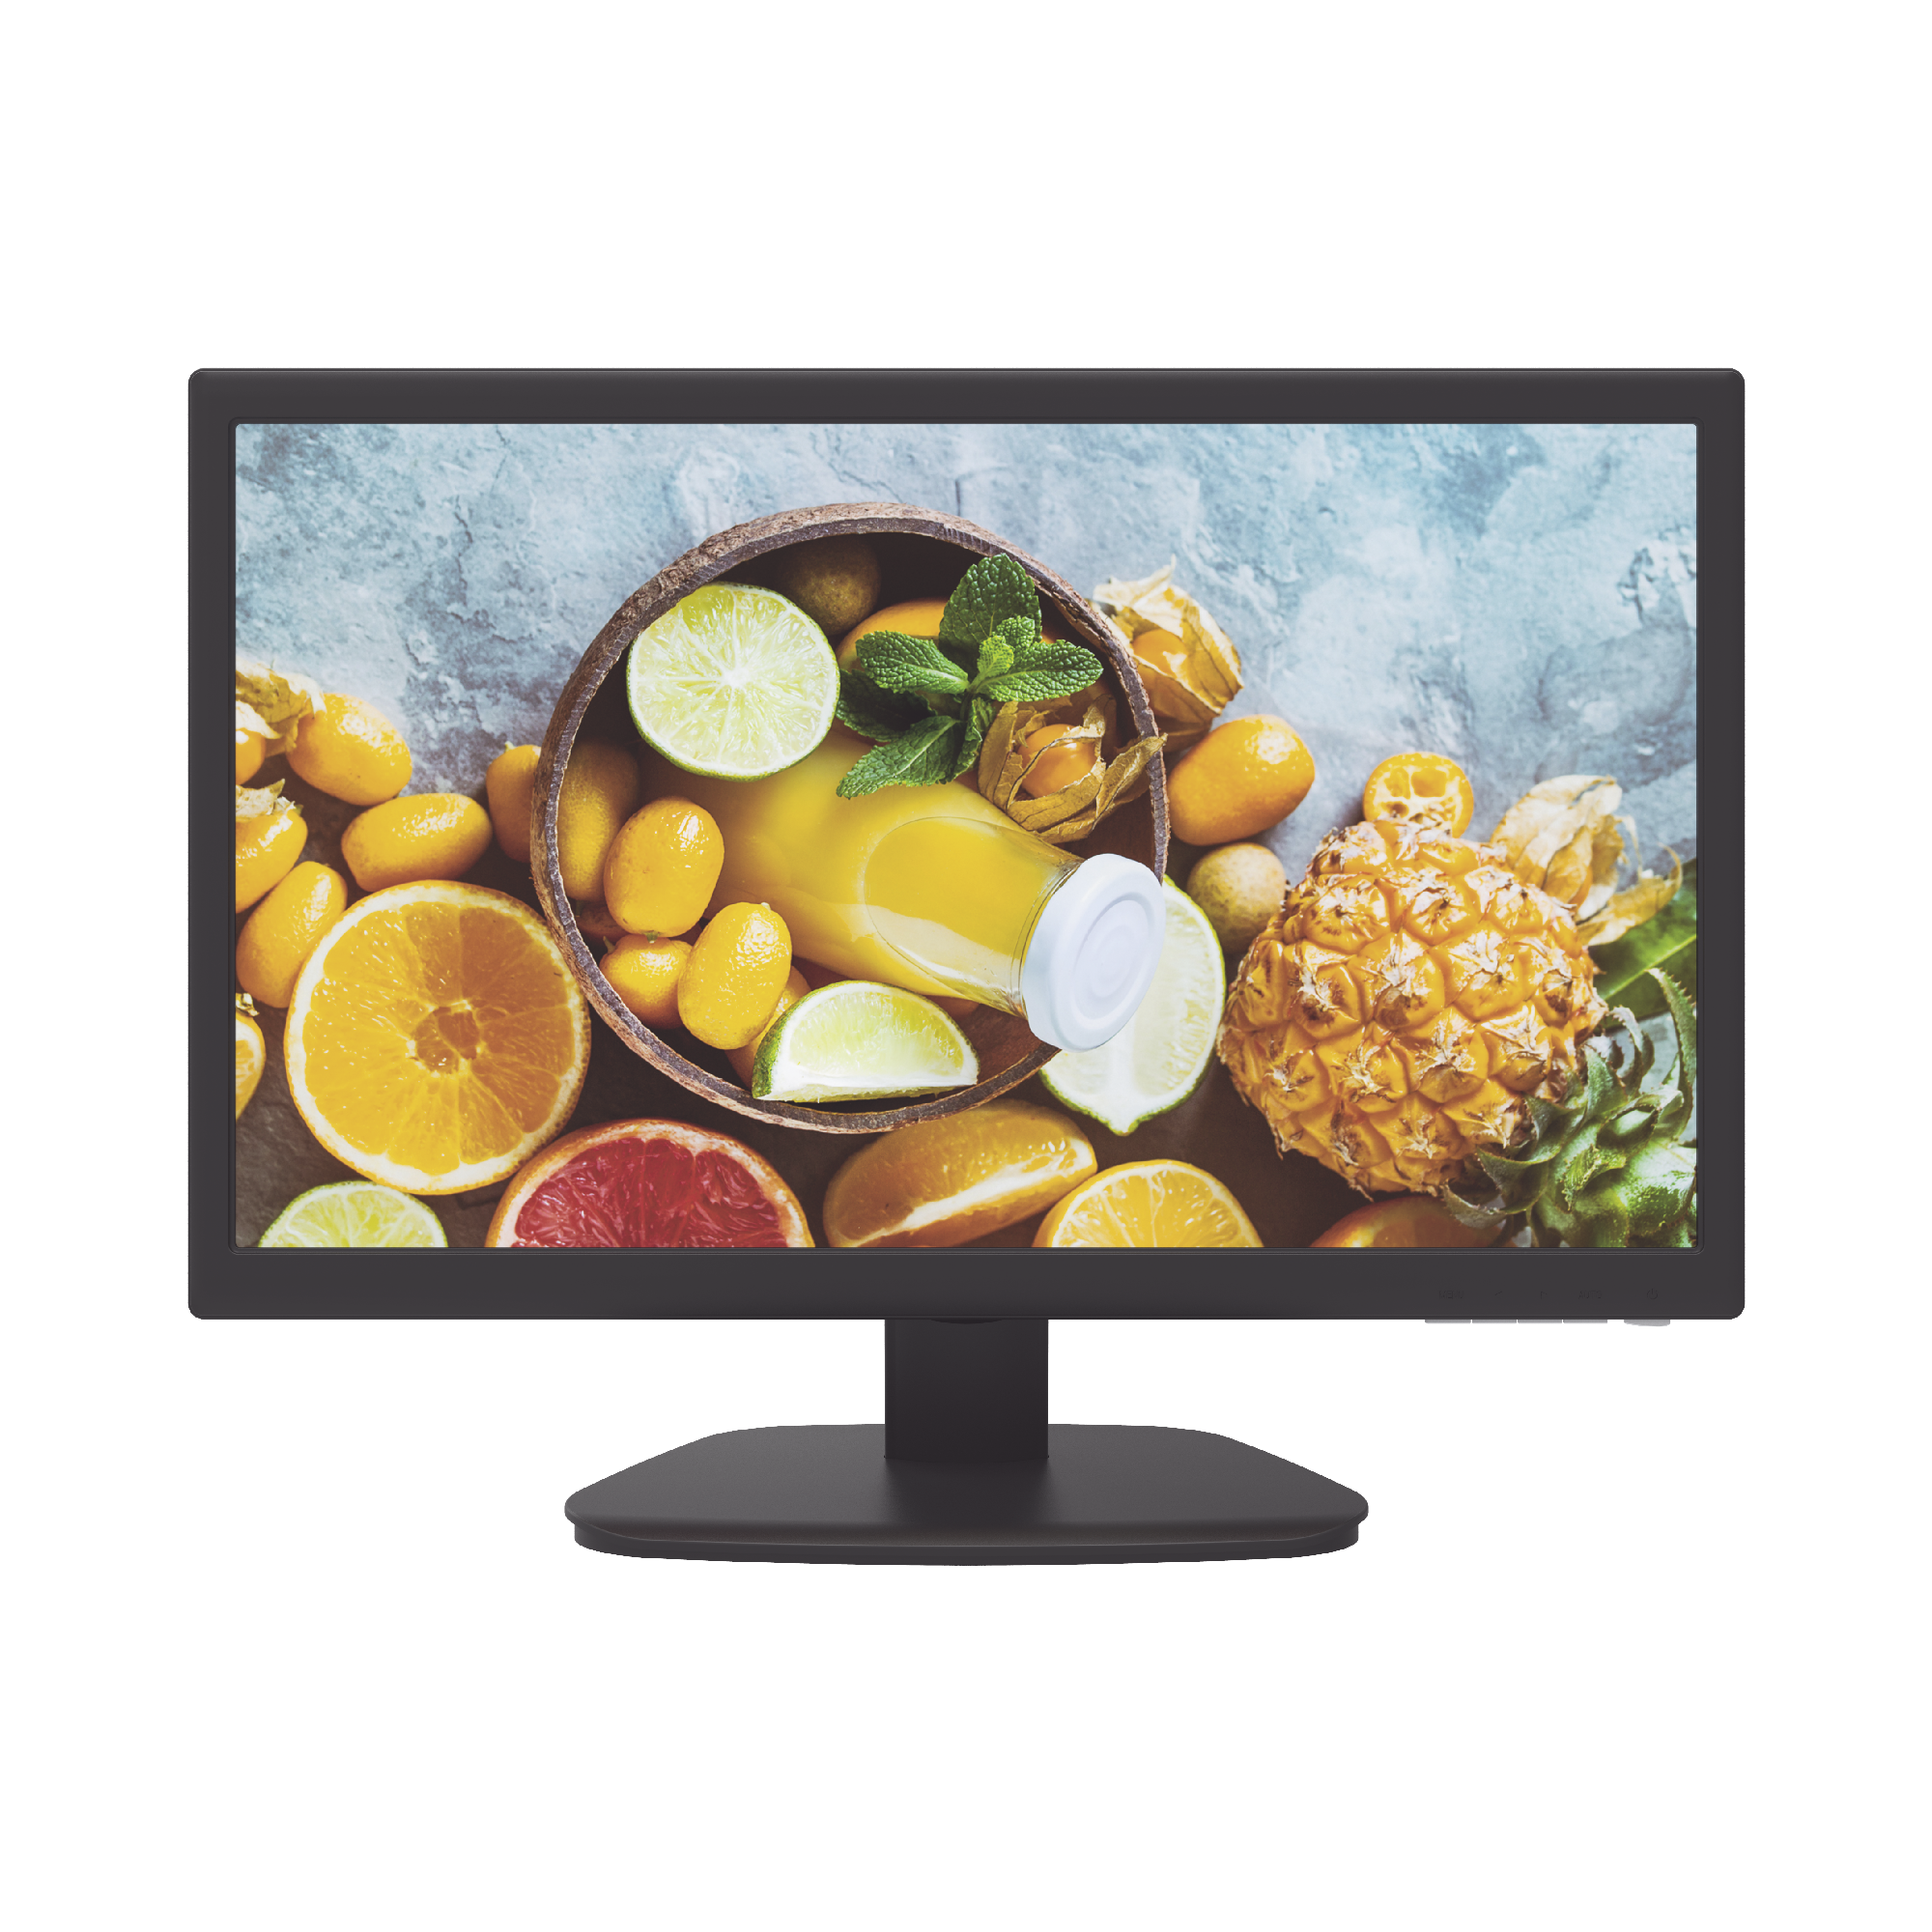 Monitor LED Full HD de 21.5 / Ideal para Videovigilancia / Uso 24-7 / Entrada HDMI-VGA / Compatible con Montaje VESA